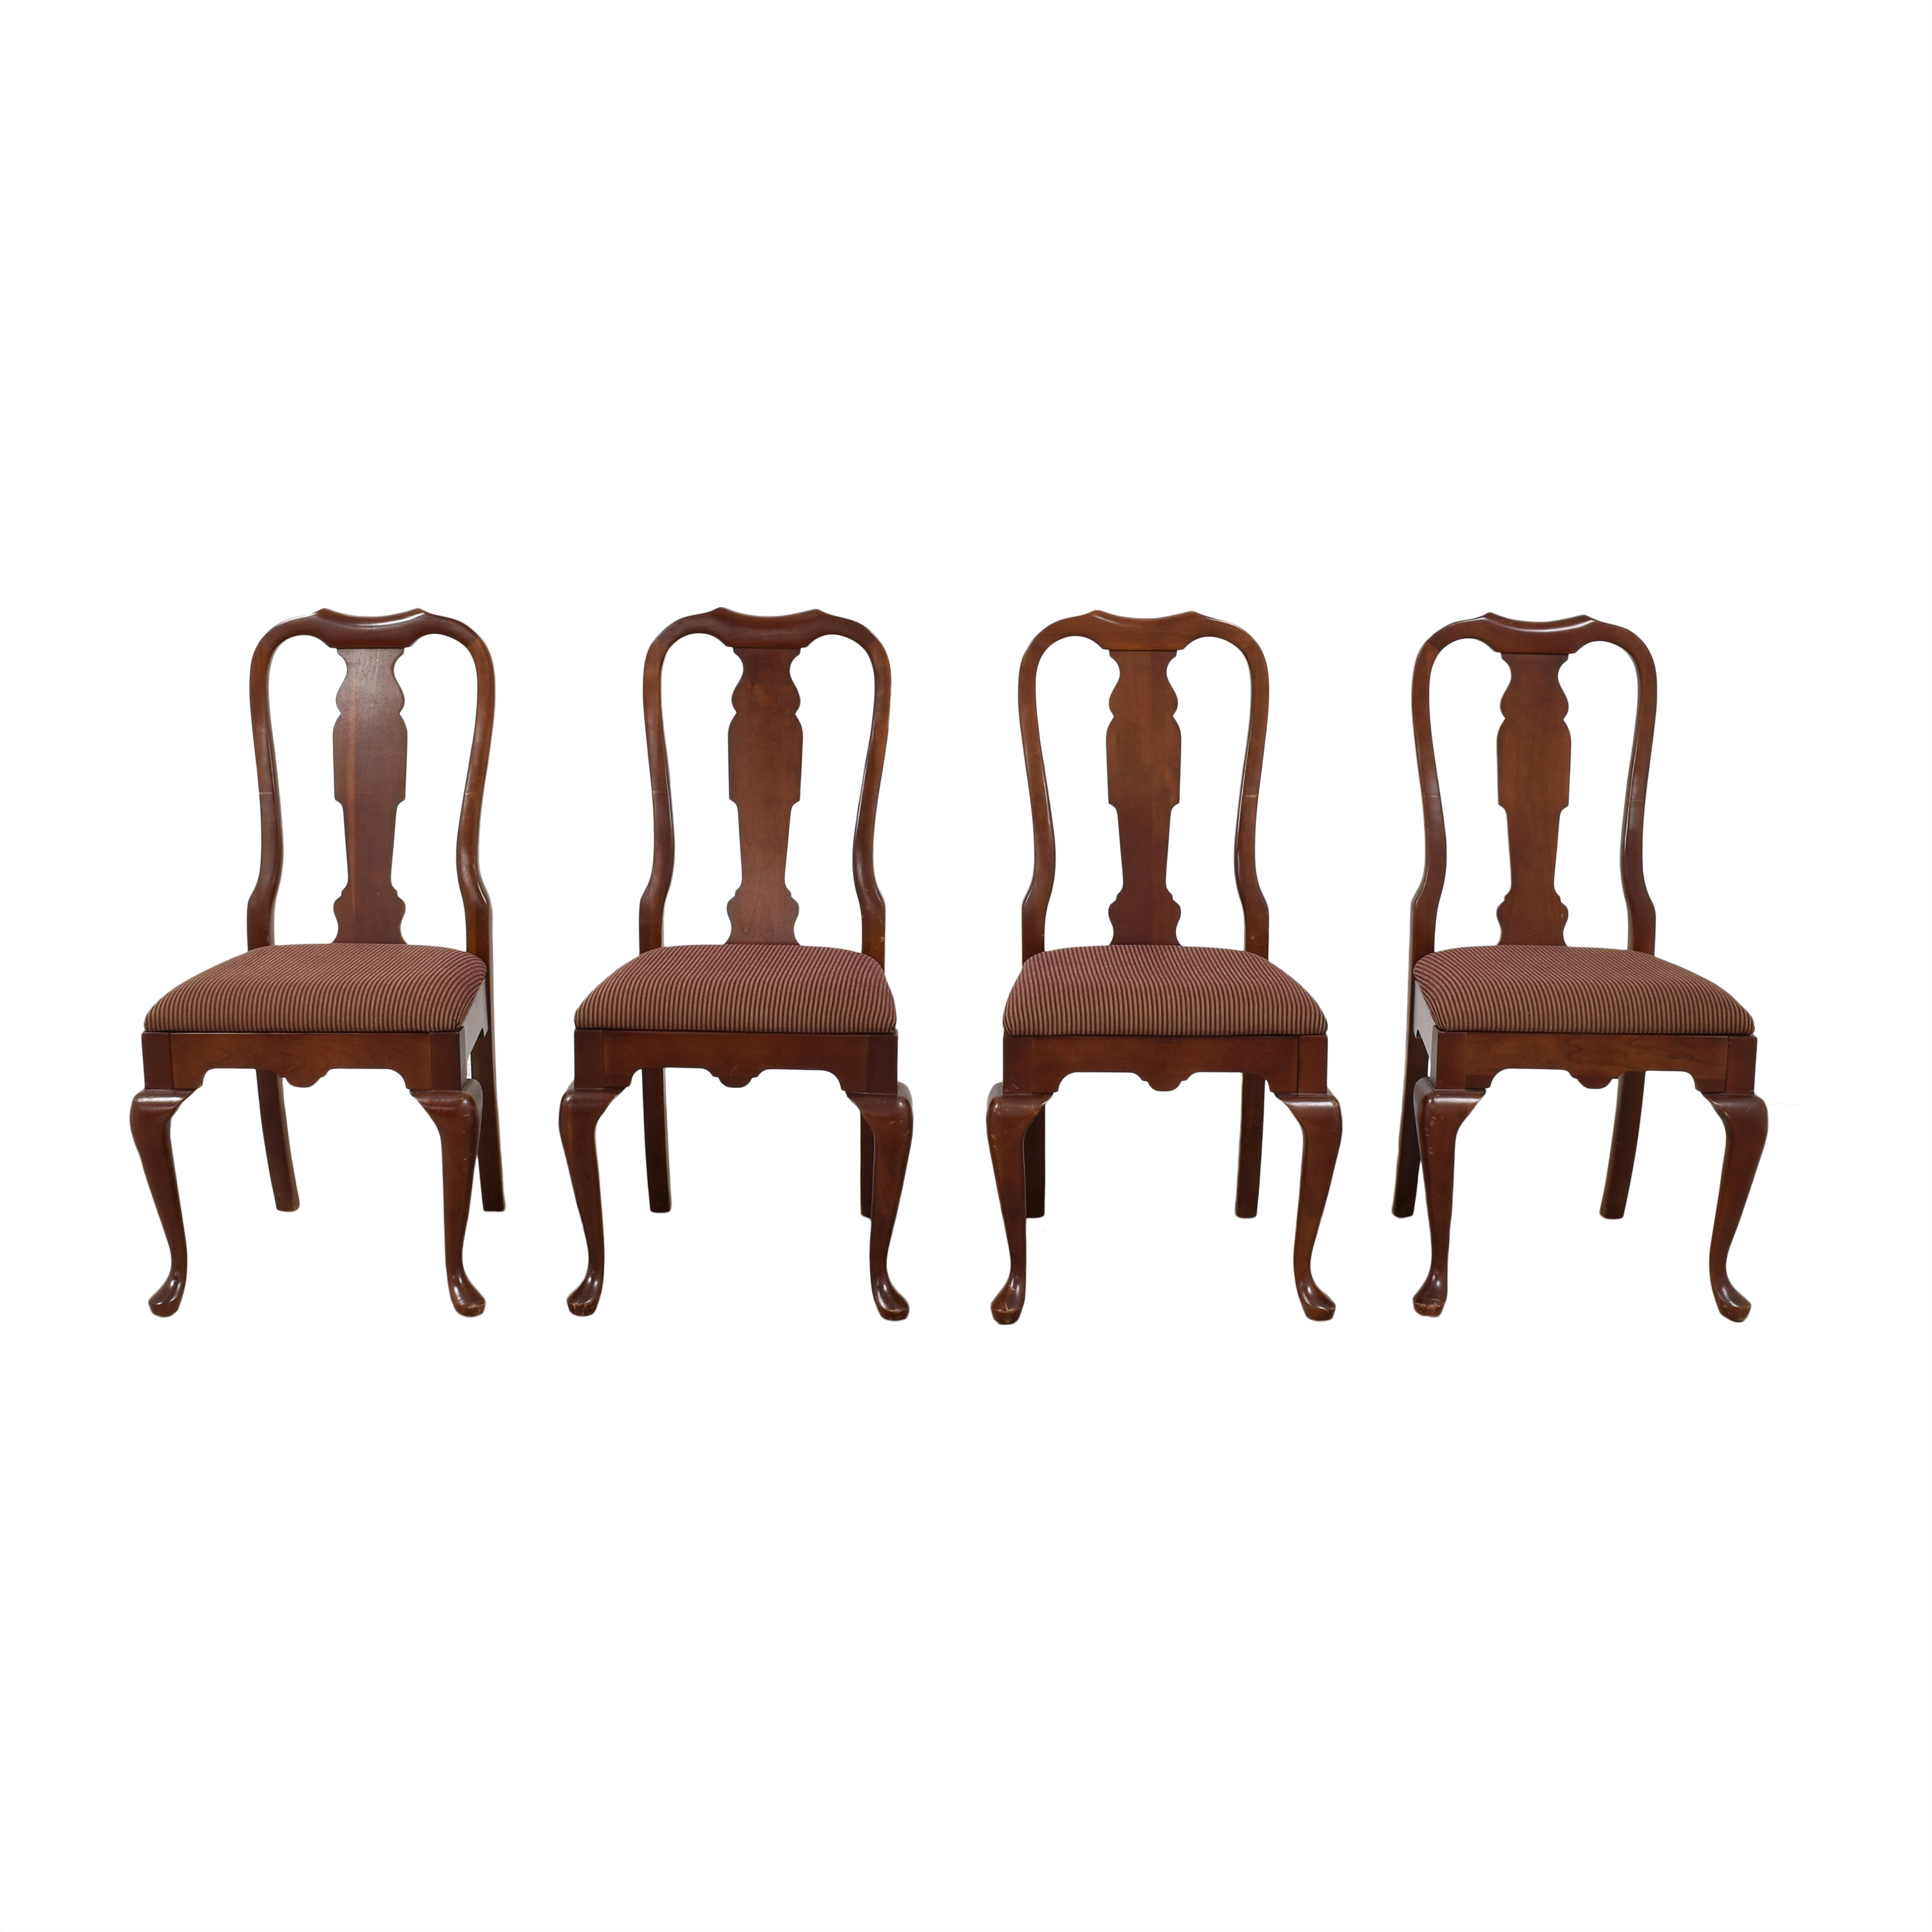 Pennsylvania House Pennsylvania House Queen Anne Dining Chairs price